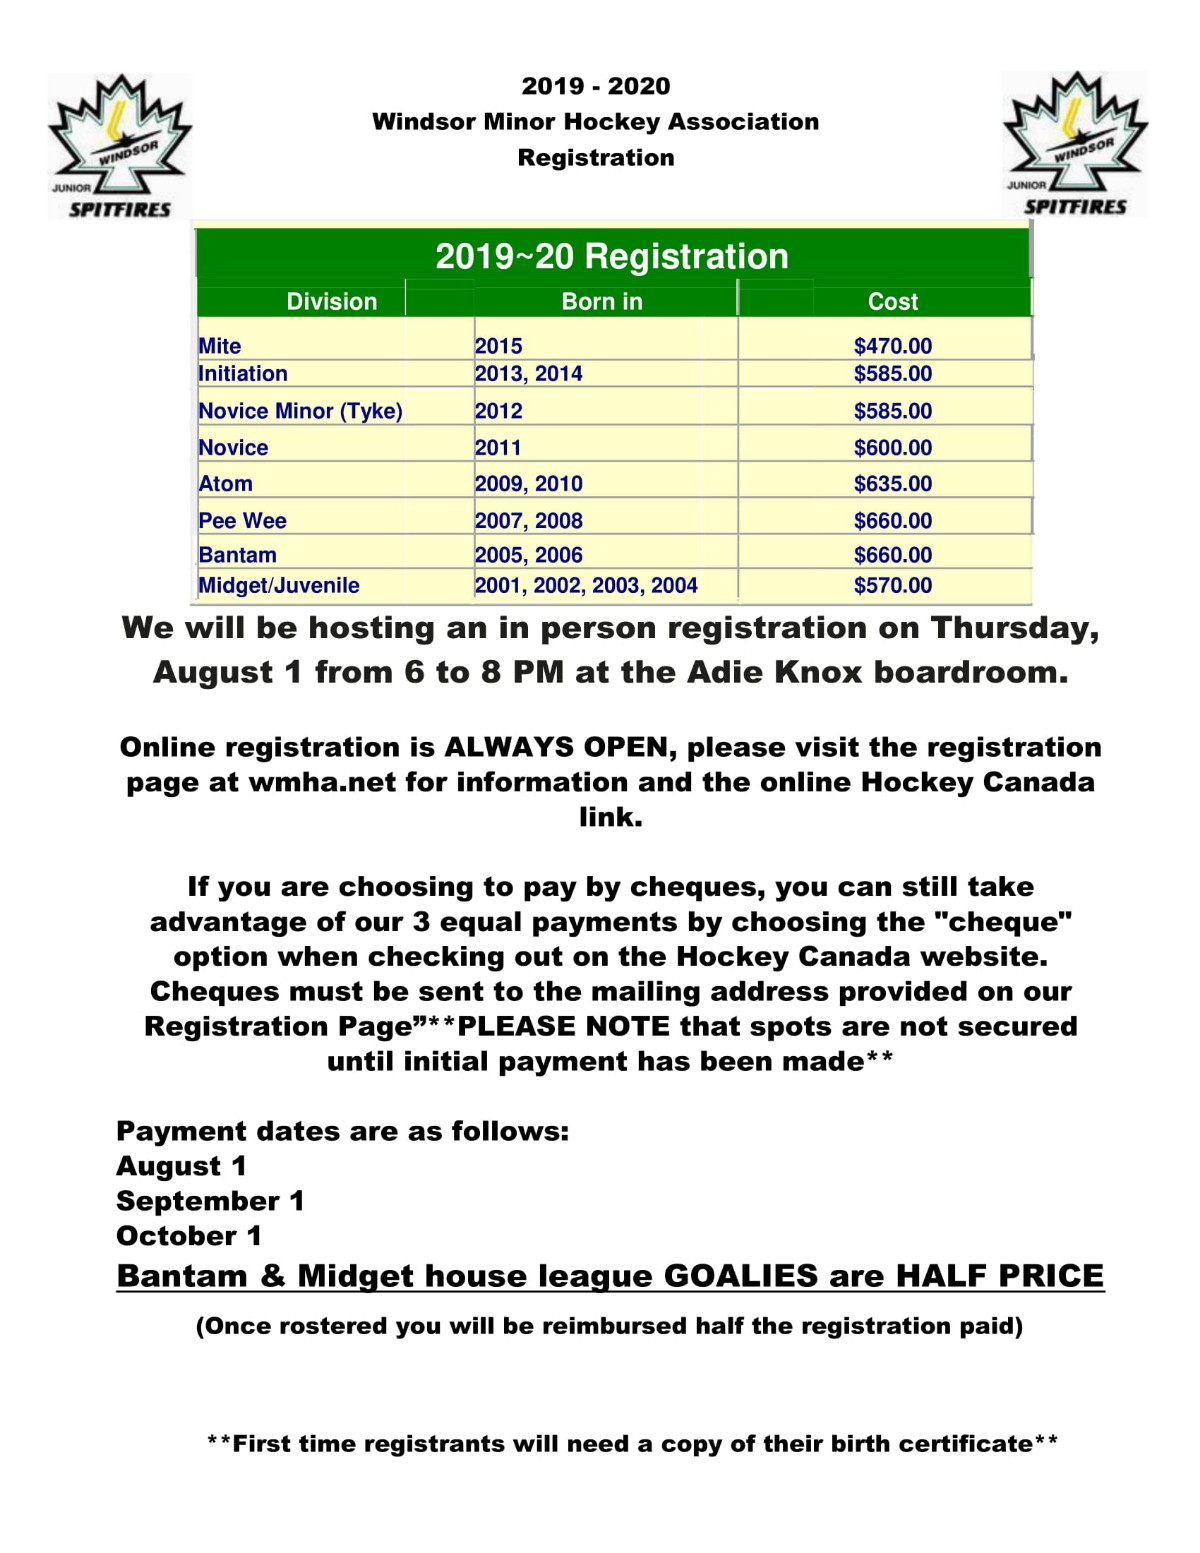 2019_Registration_Ad_August-1.jpg